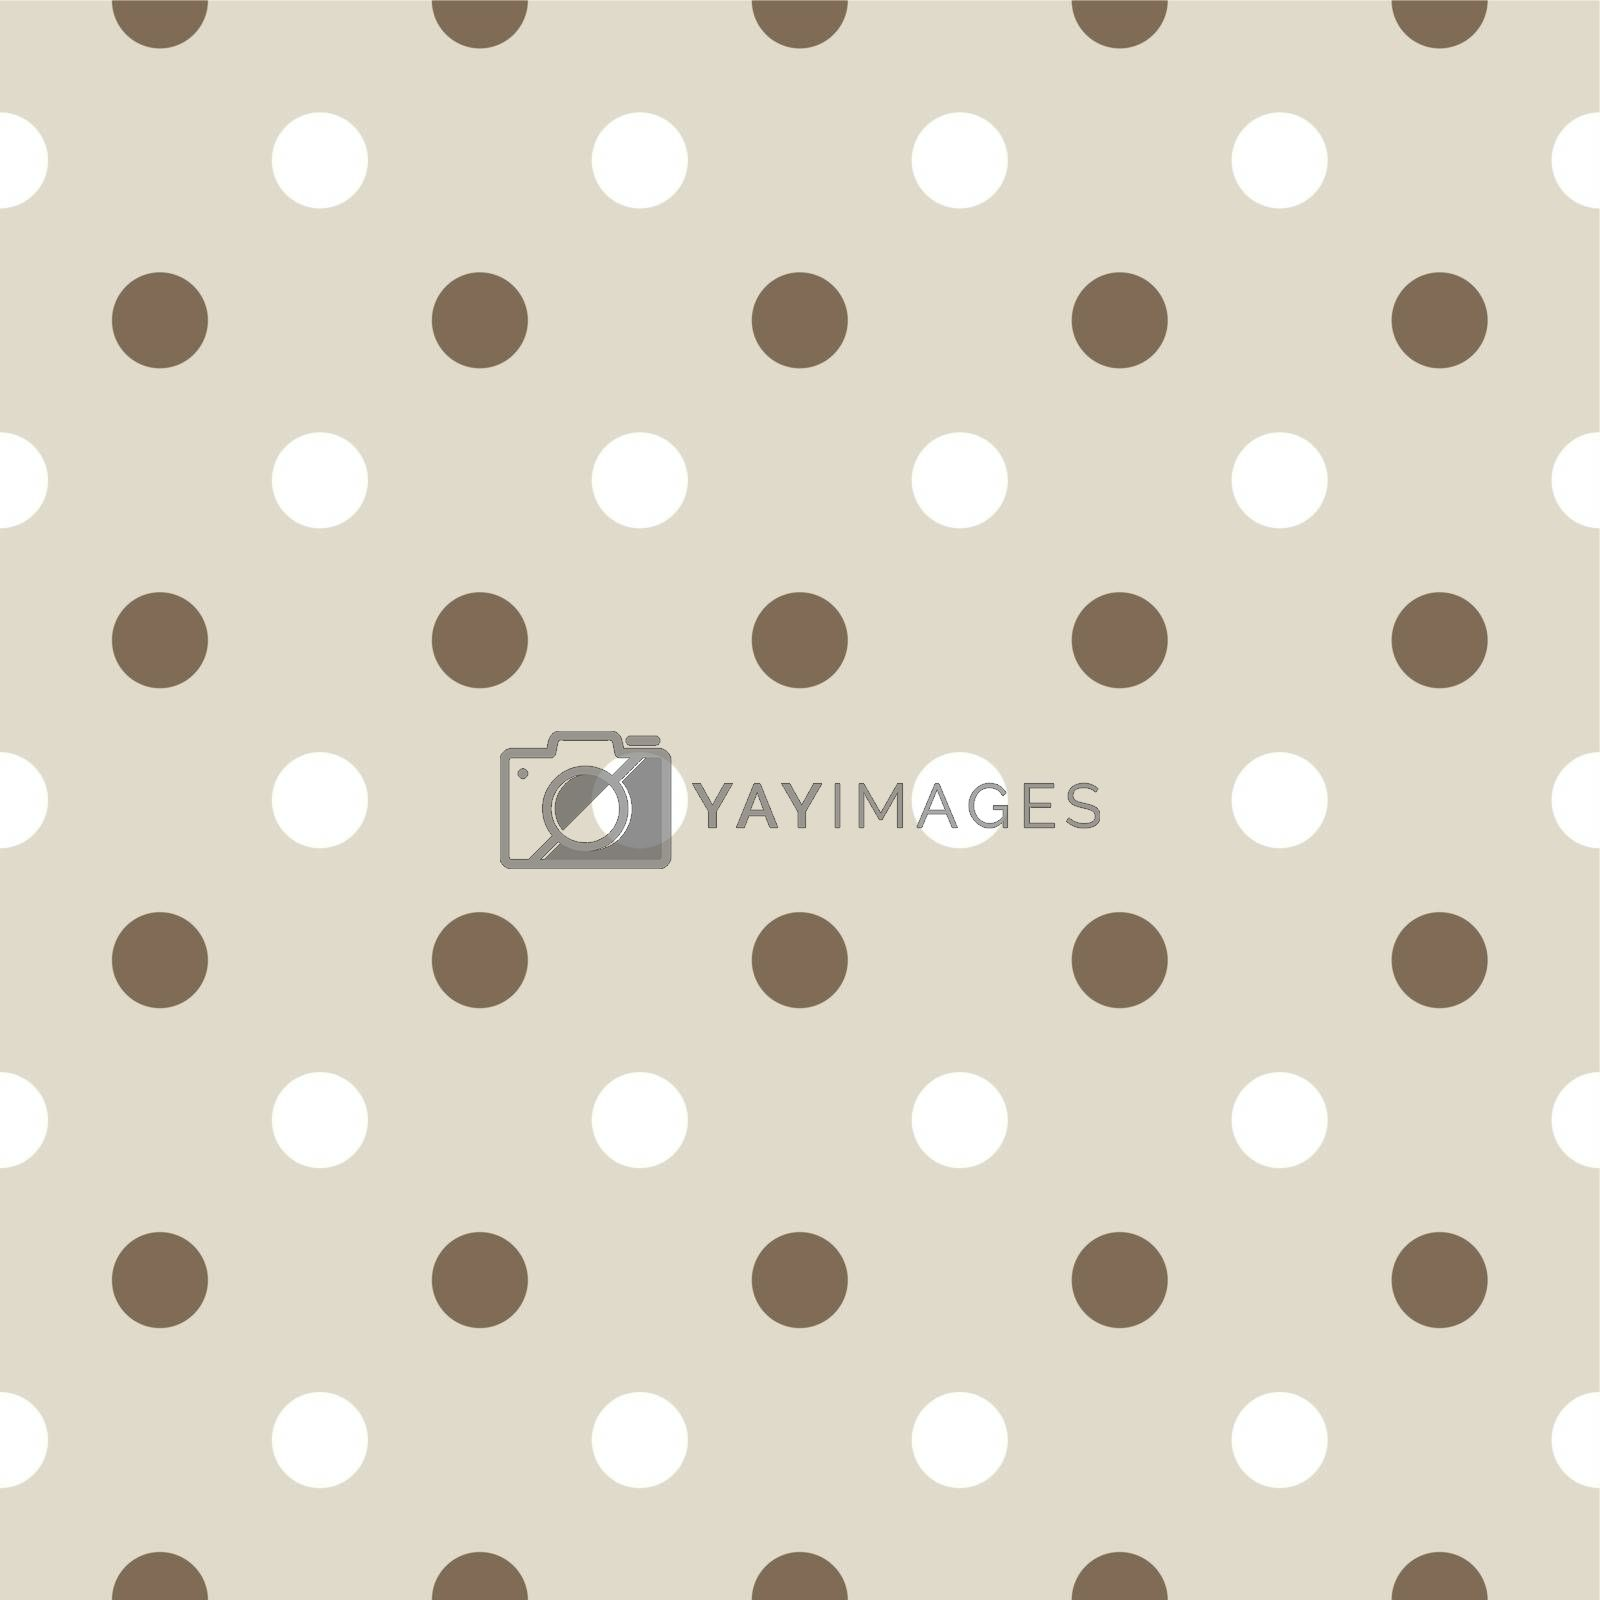 Dotted pattern or background with brown and white dots. Vector